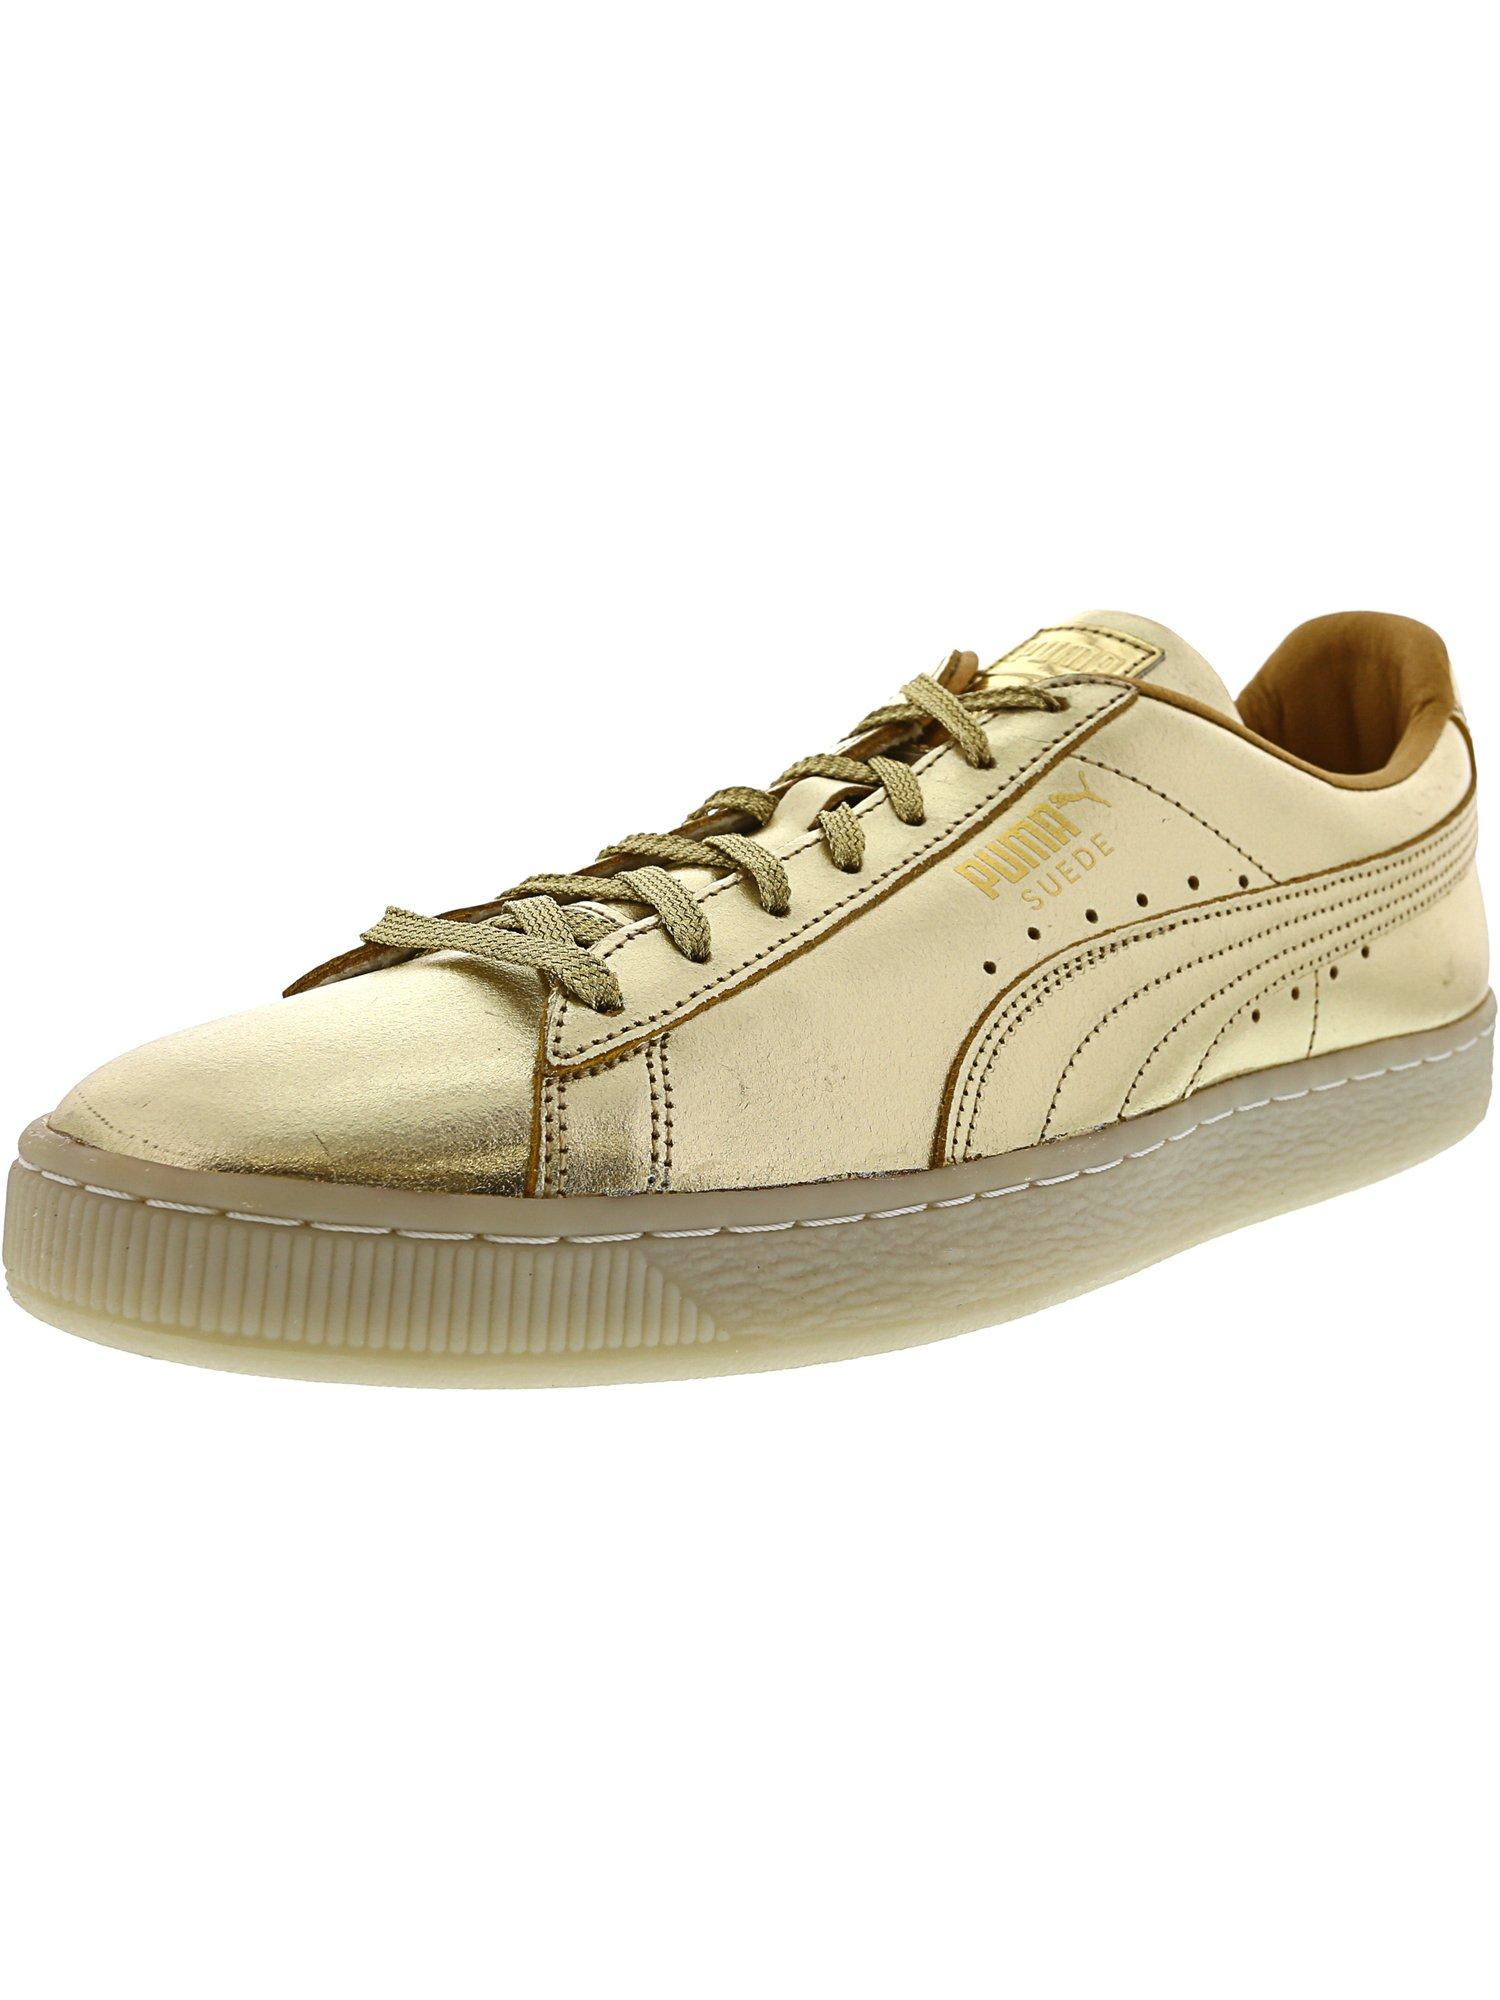 Gold Ankle-High Fashion Sneaker